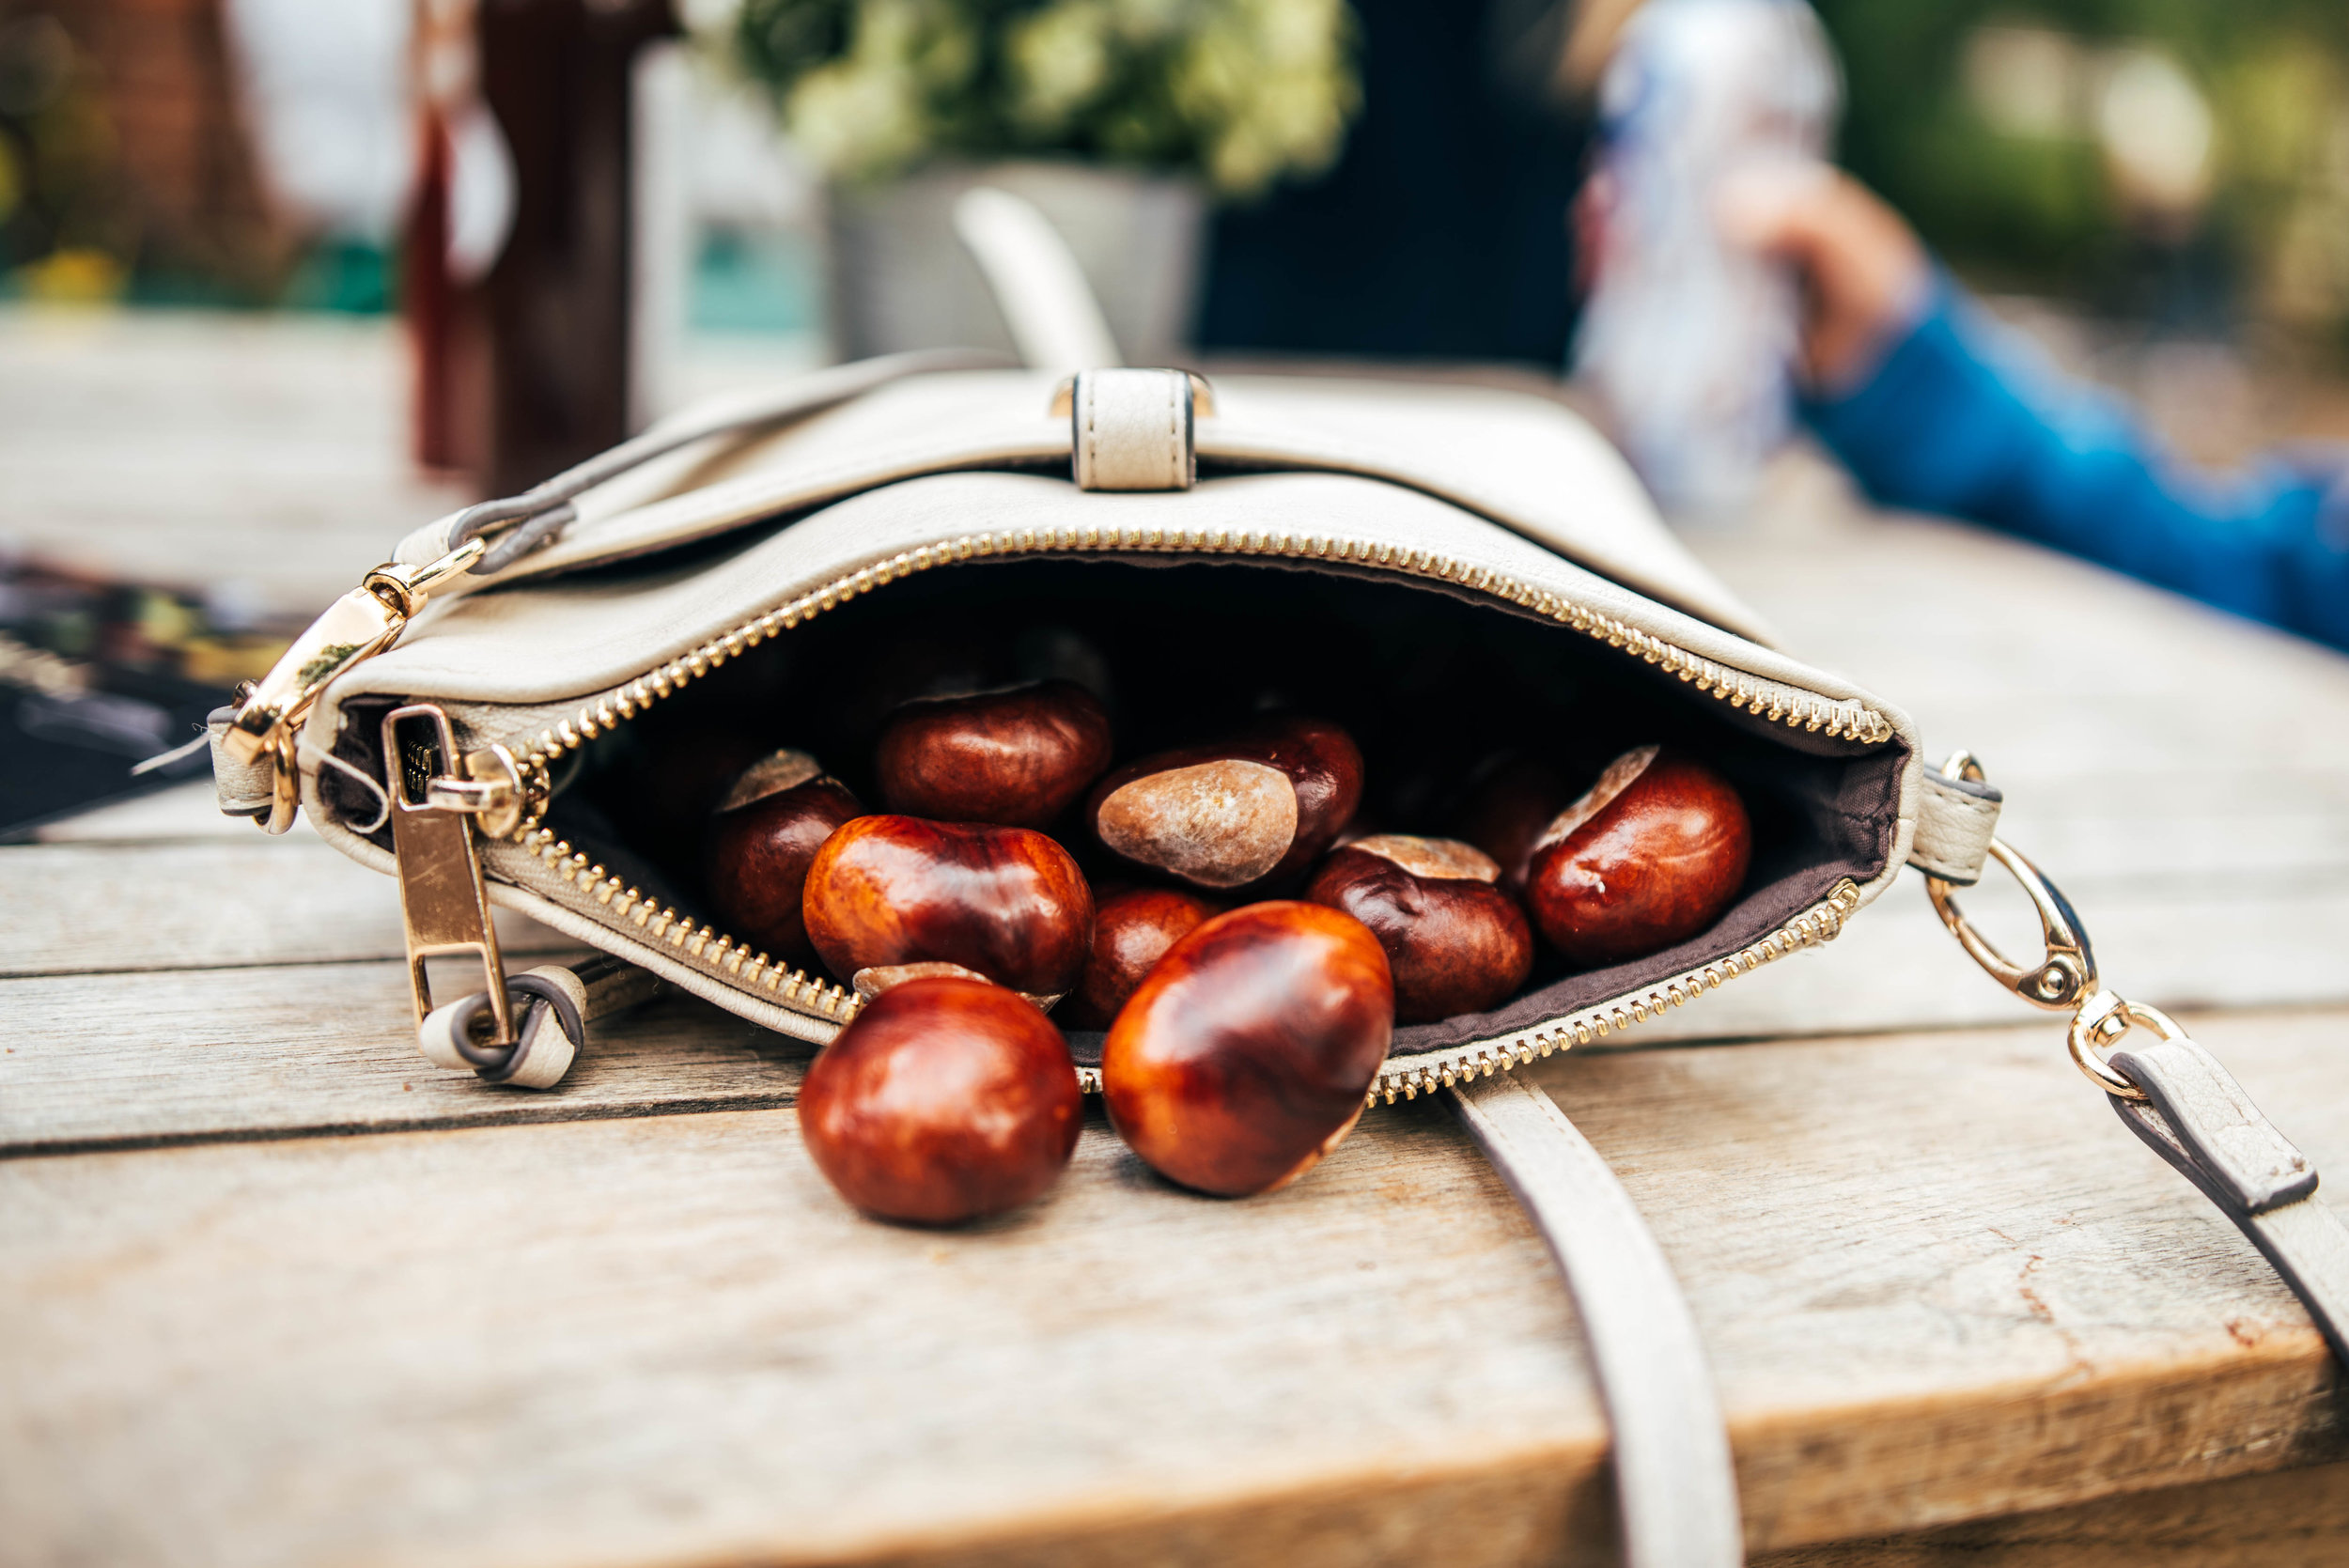 Conkers spill from an open bag Essex UK Documentary Photographer